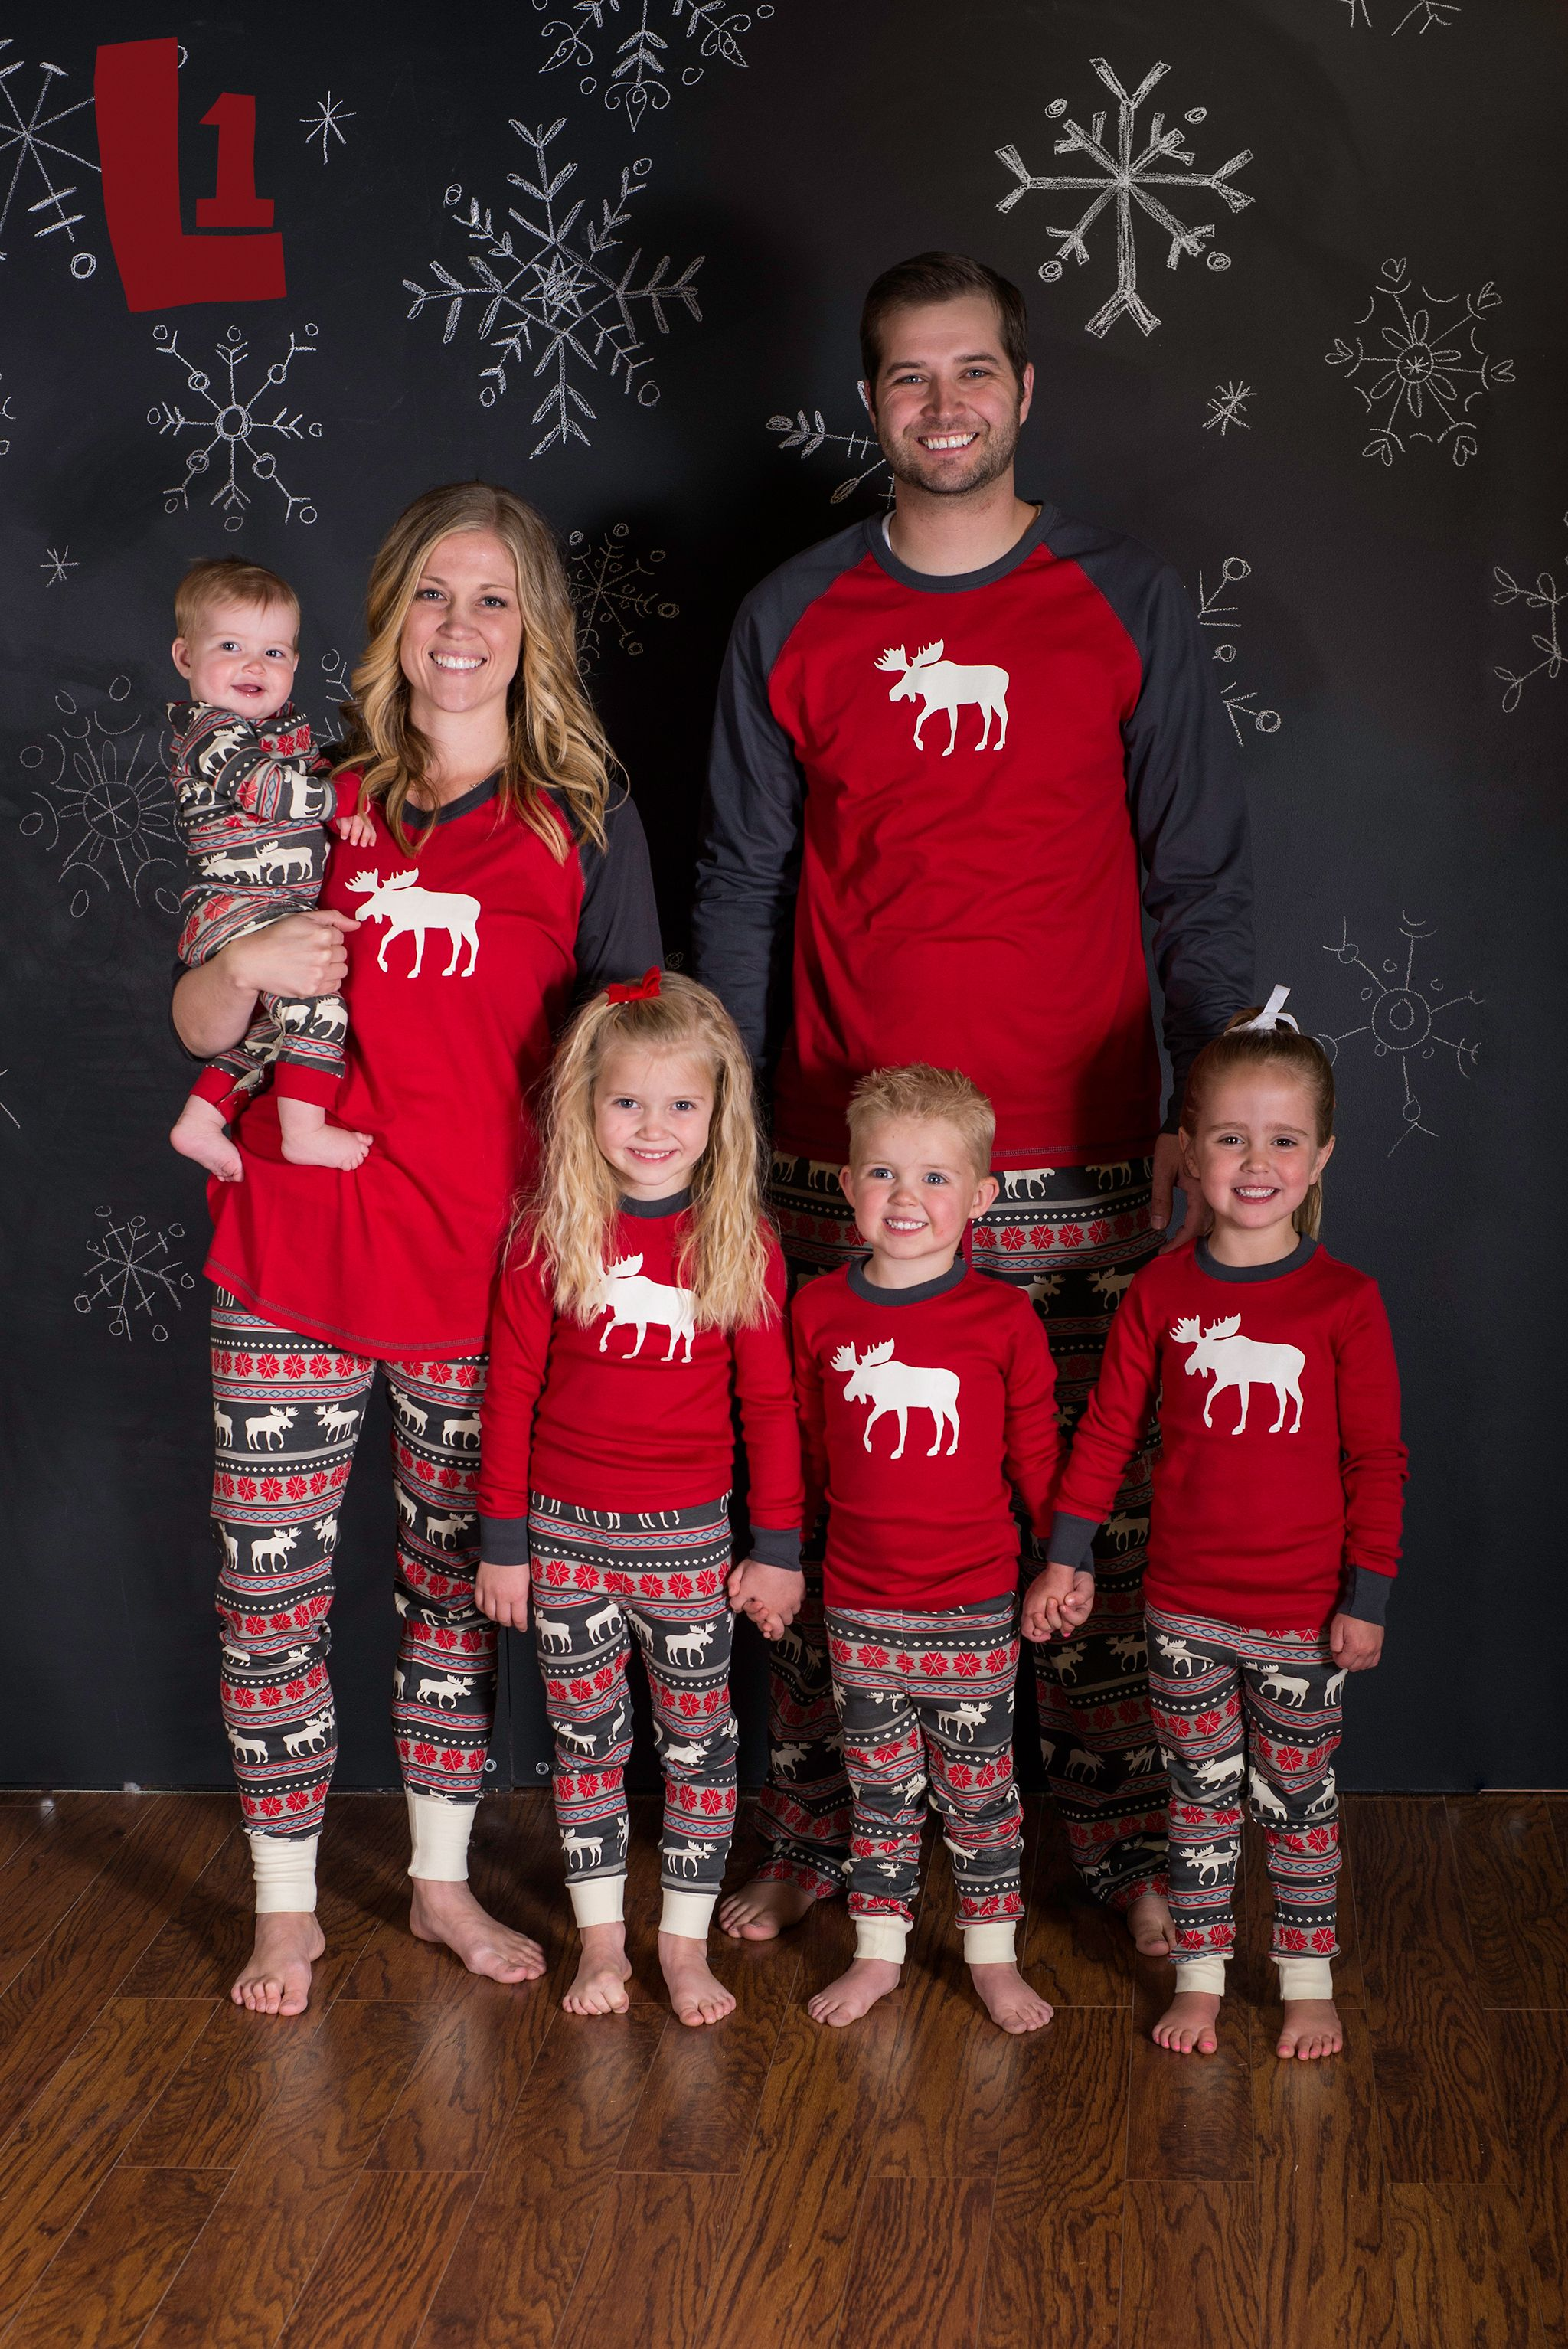 Matching pyjamas photo. Matching pyjamas photo Matching Pajamas 616a08c17